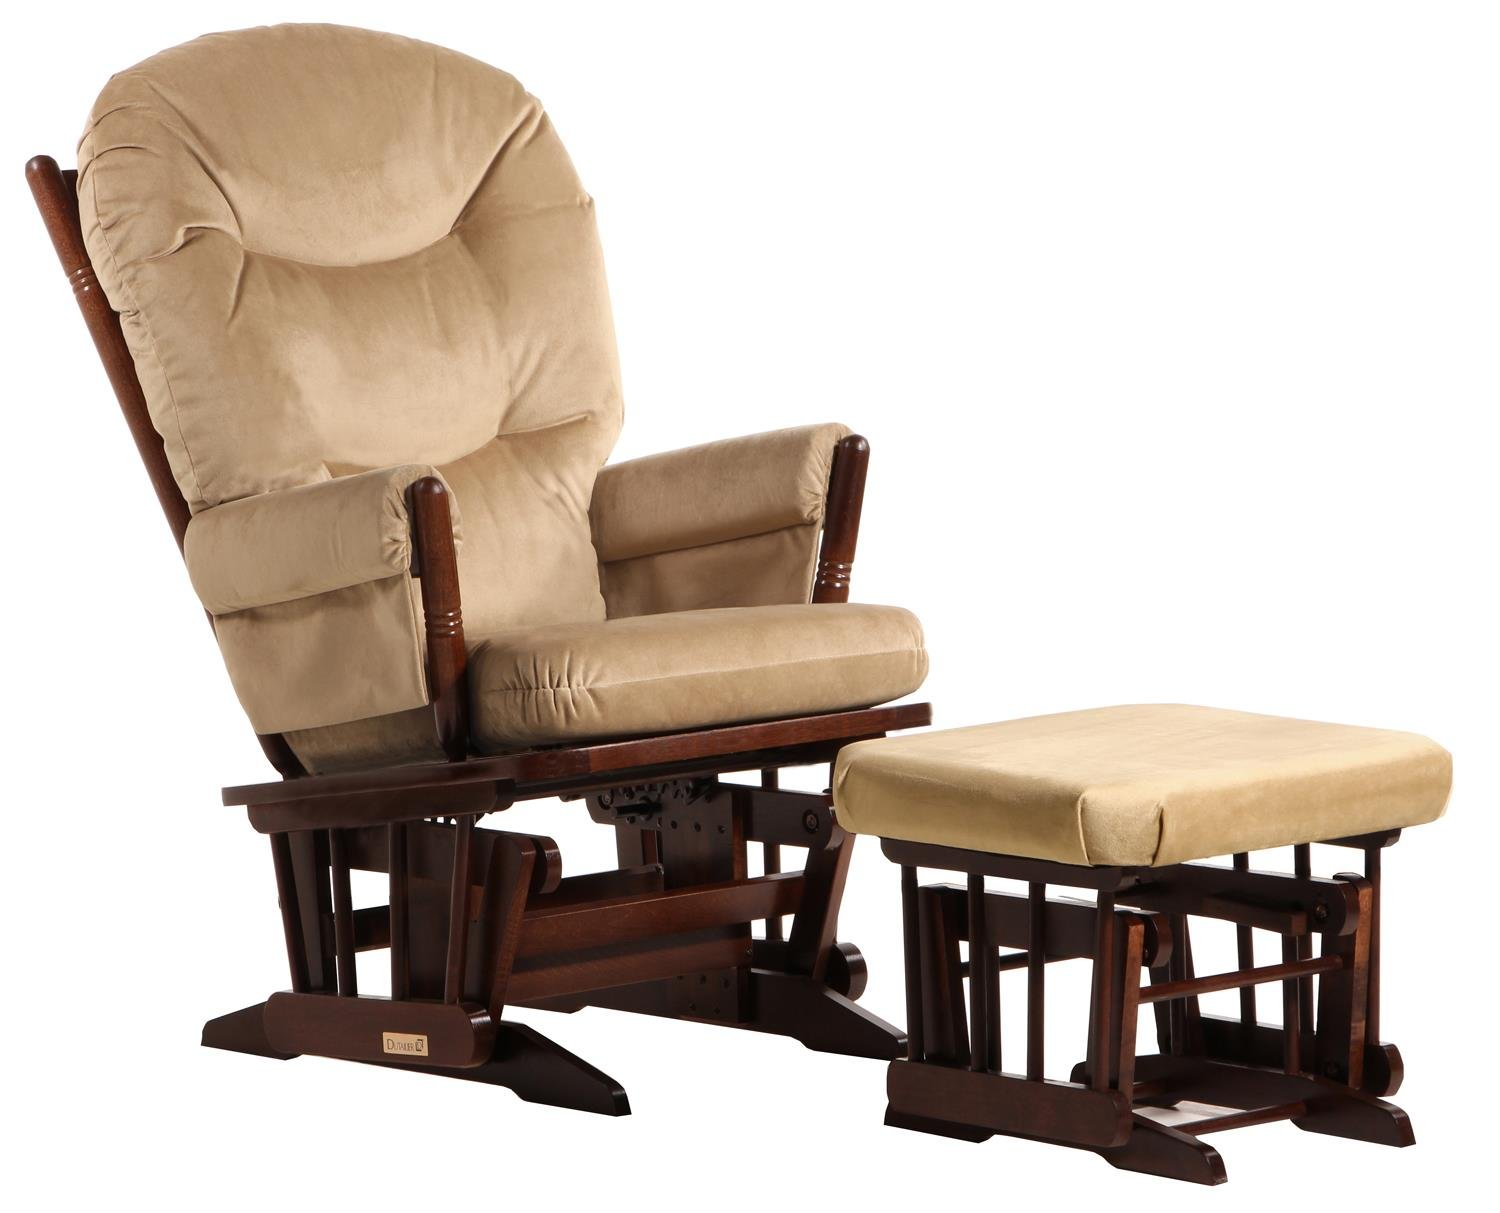 Dutailier Colonial Glider and Ottoman Combo by Dutailier